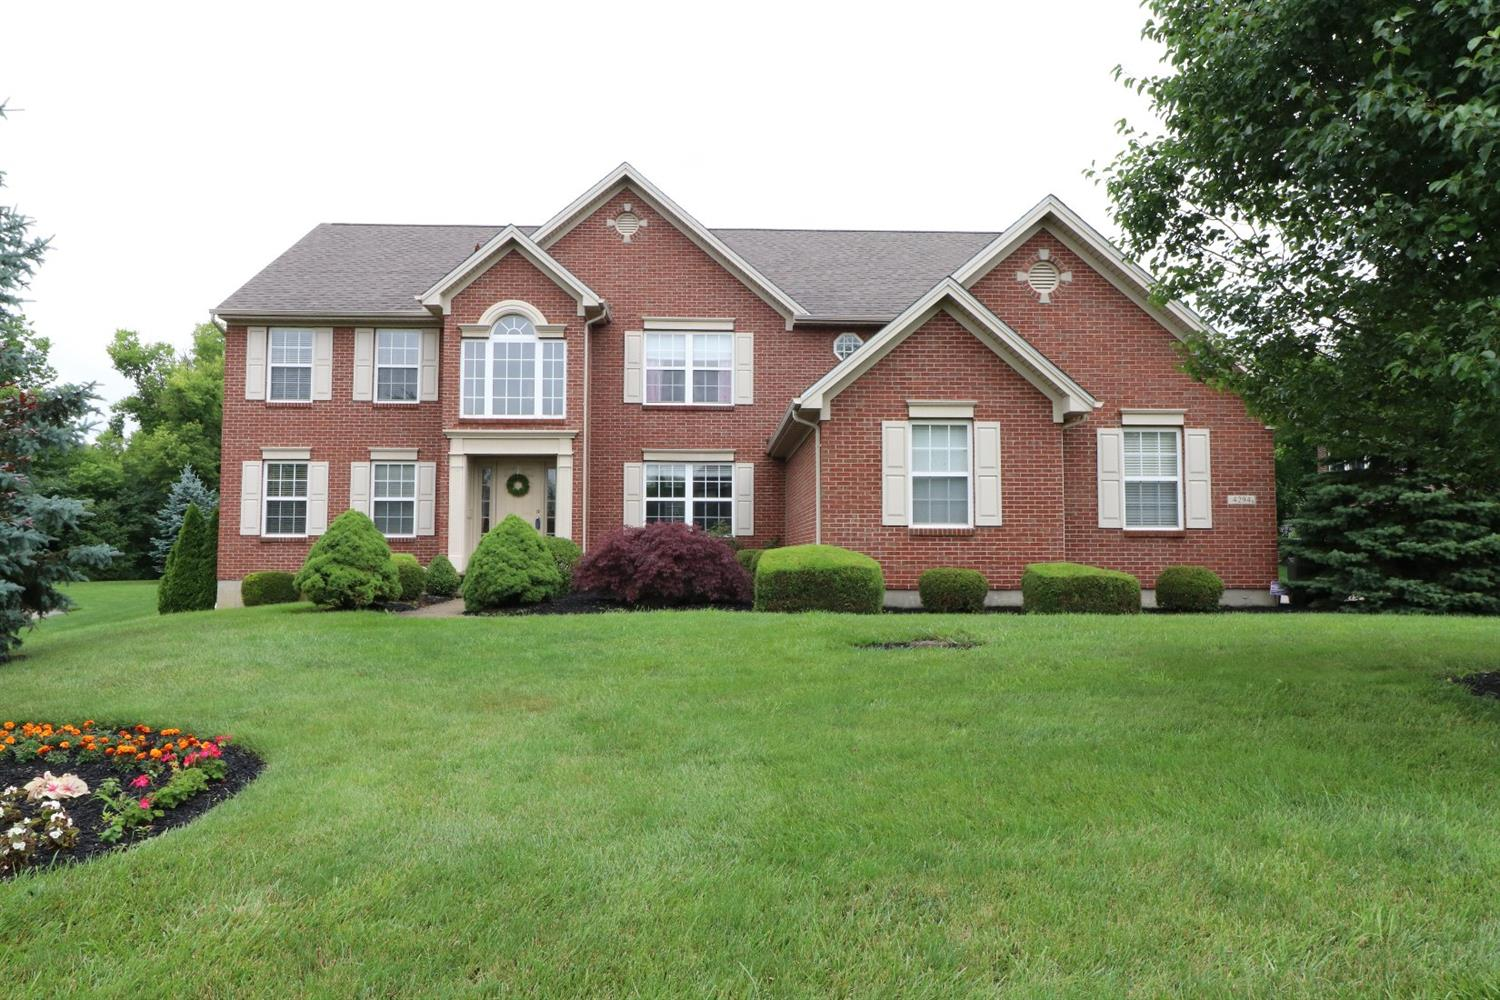 Property for sale at 4294 Cross Creek Court, Liberty Twp,  Ohio 45011